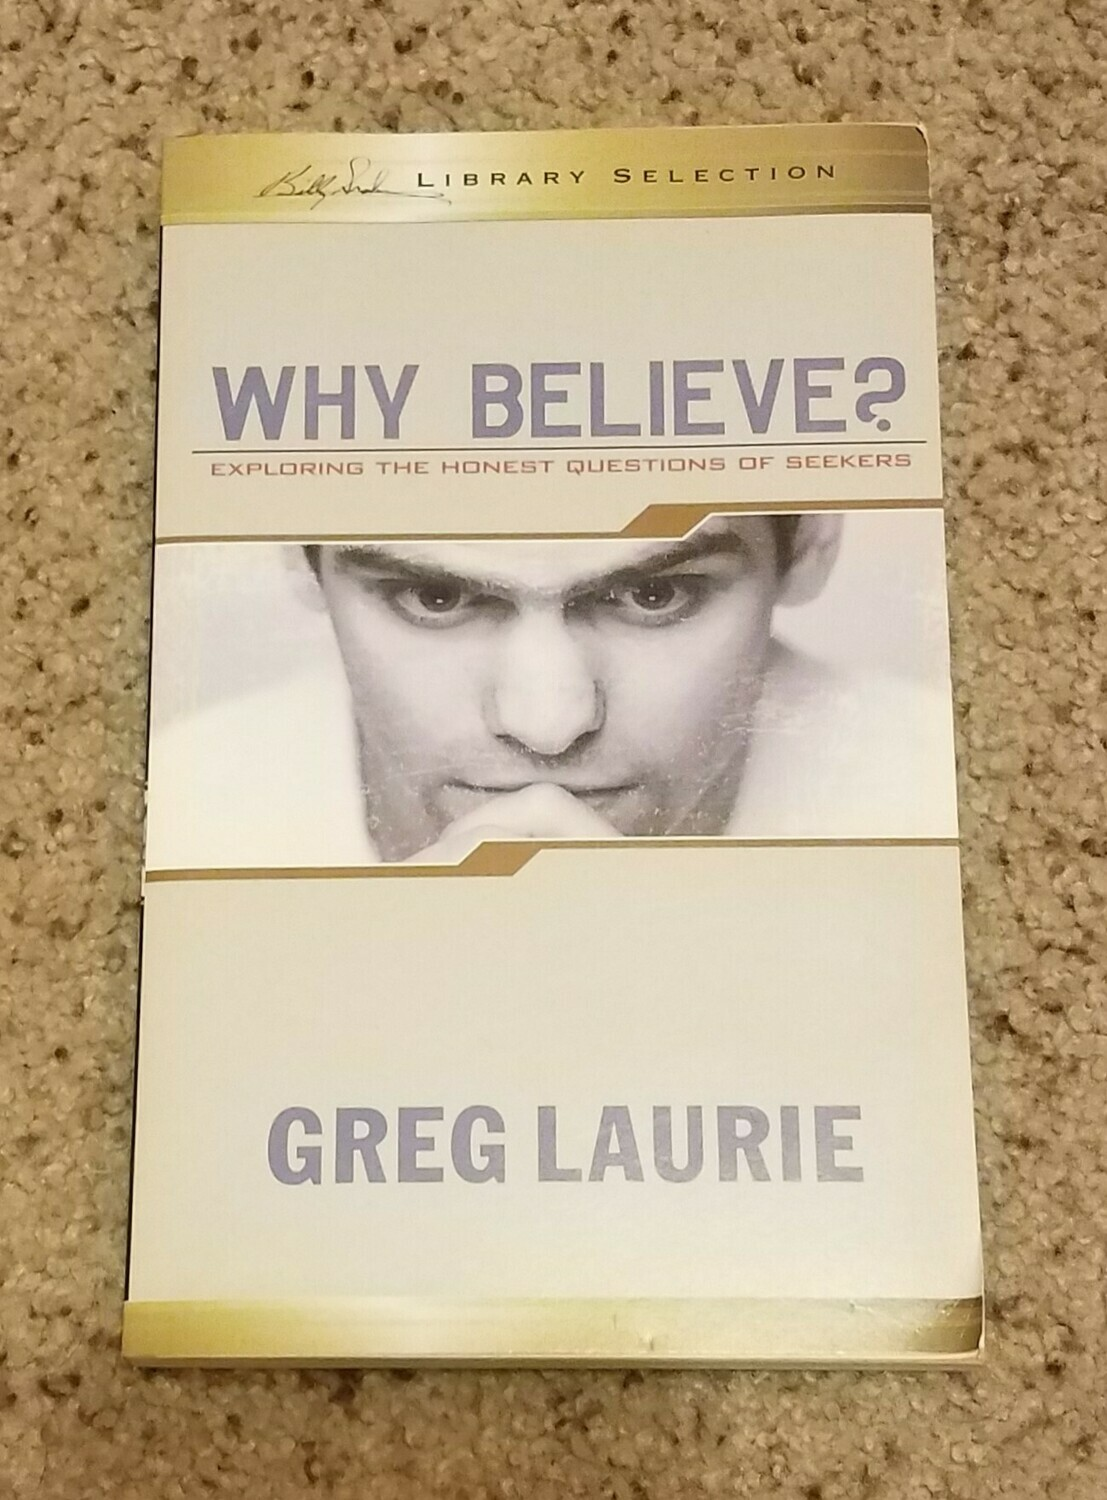 Why Believe? by Greg Laurie